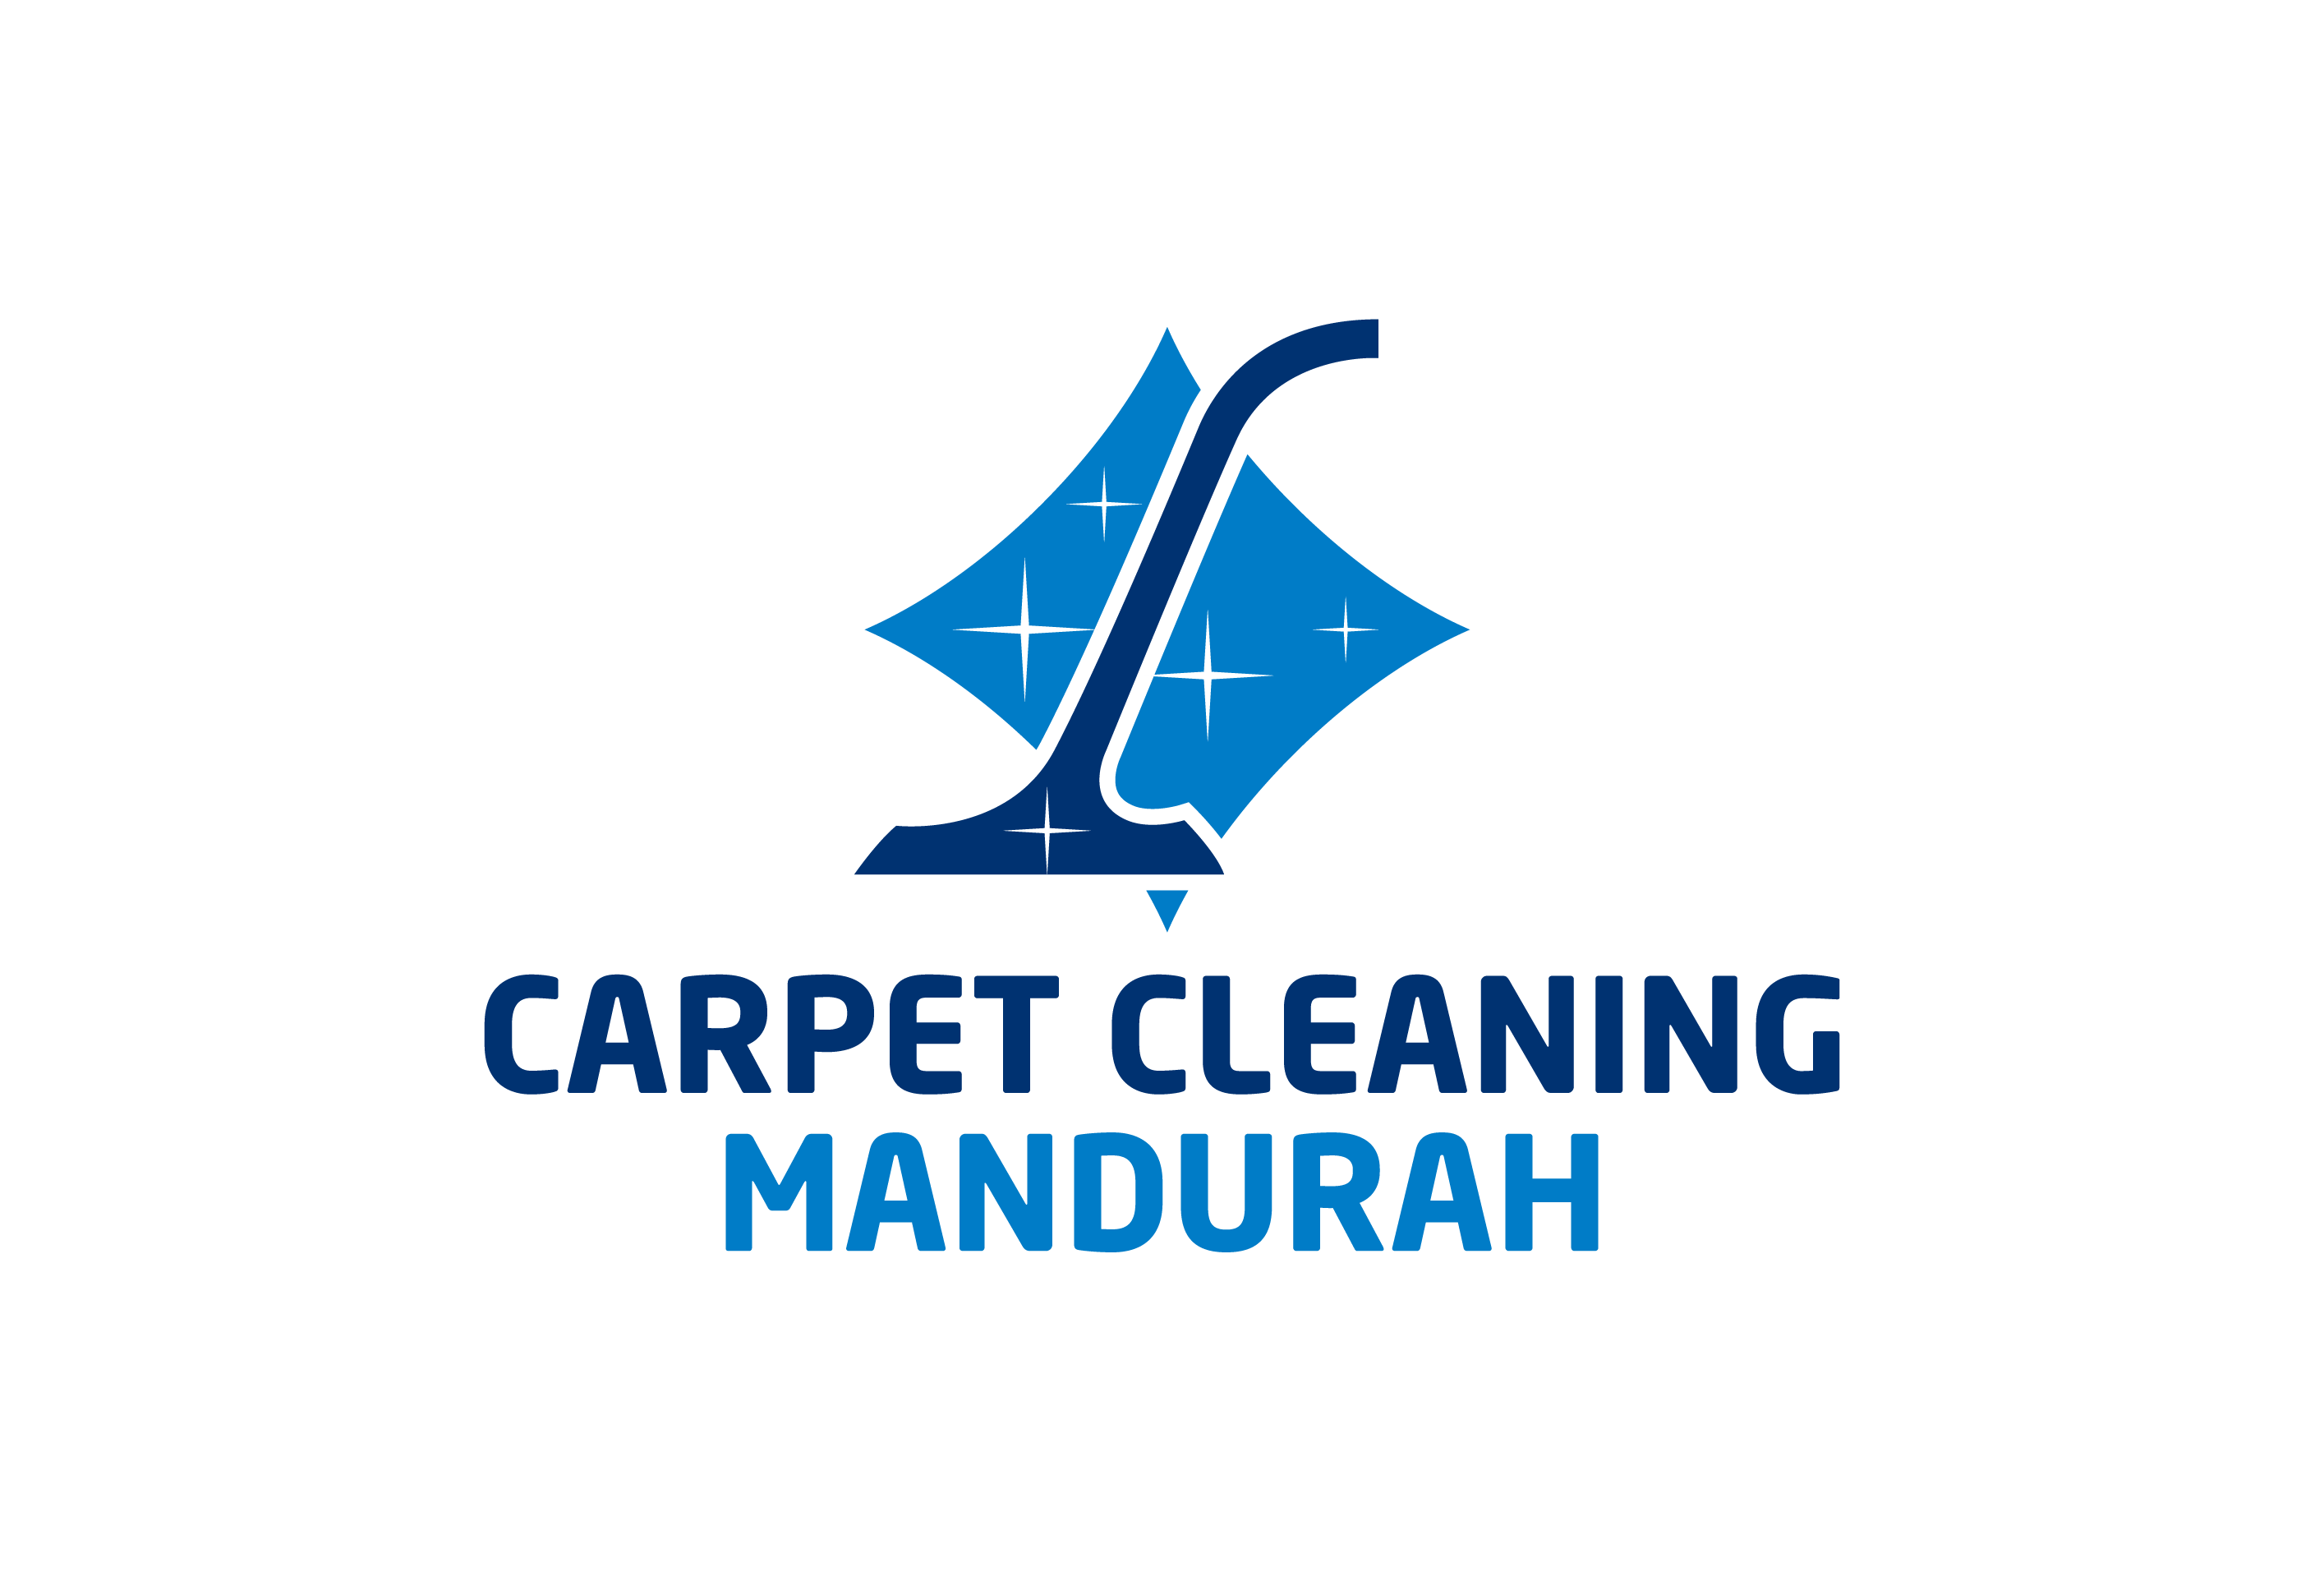 mandurah wa carpet cleaning logo carpet cleaning mandurah